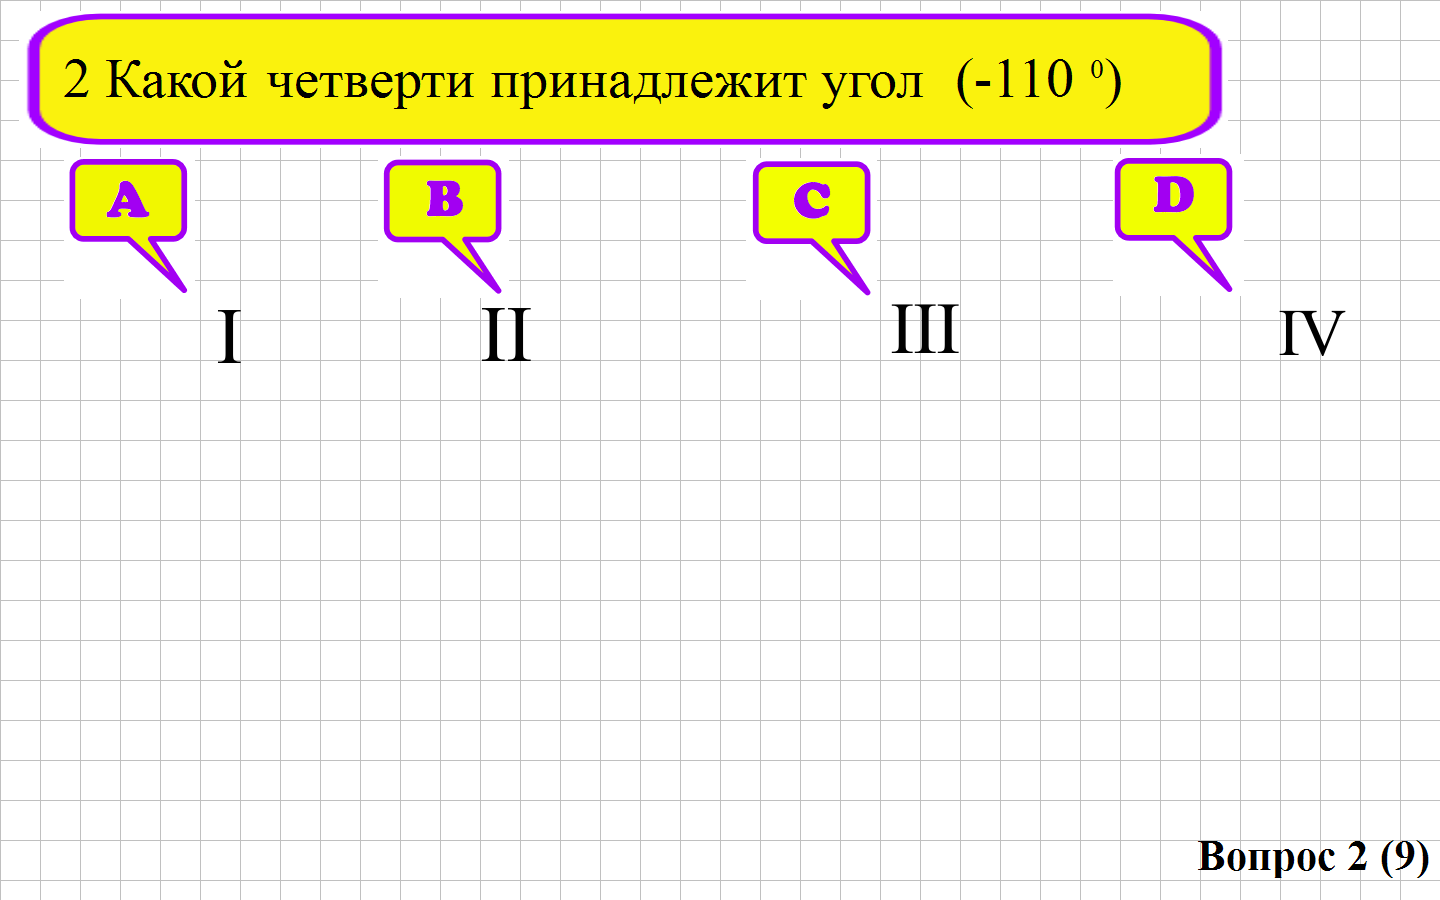 C:\Documents and Settings\Admin\Рабочий стол\10.png